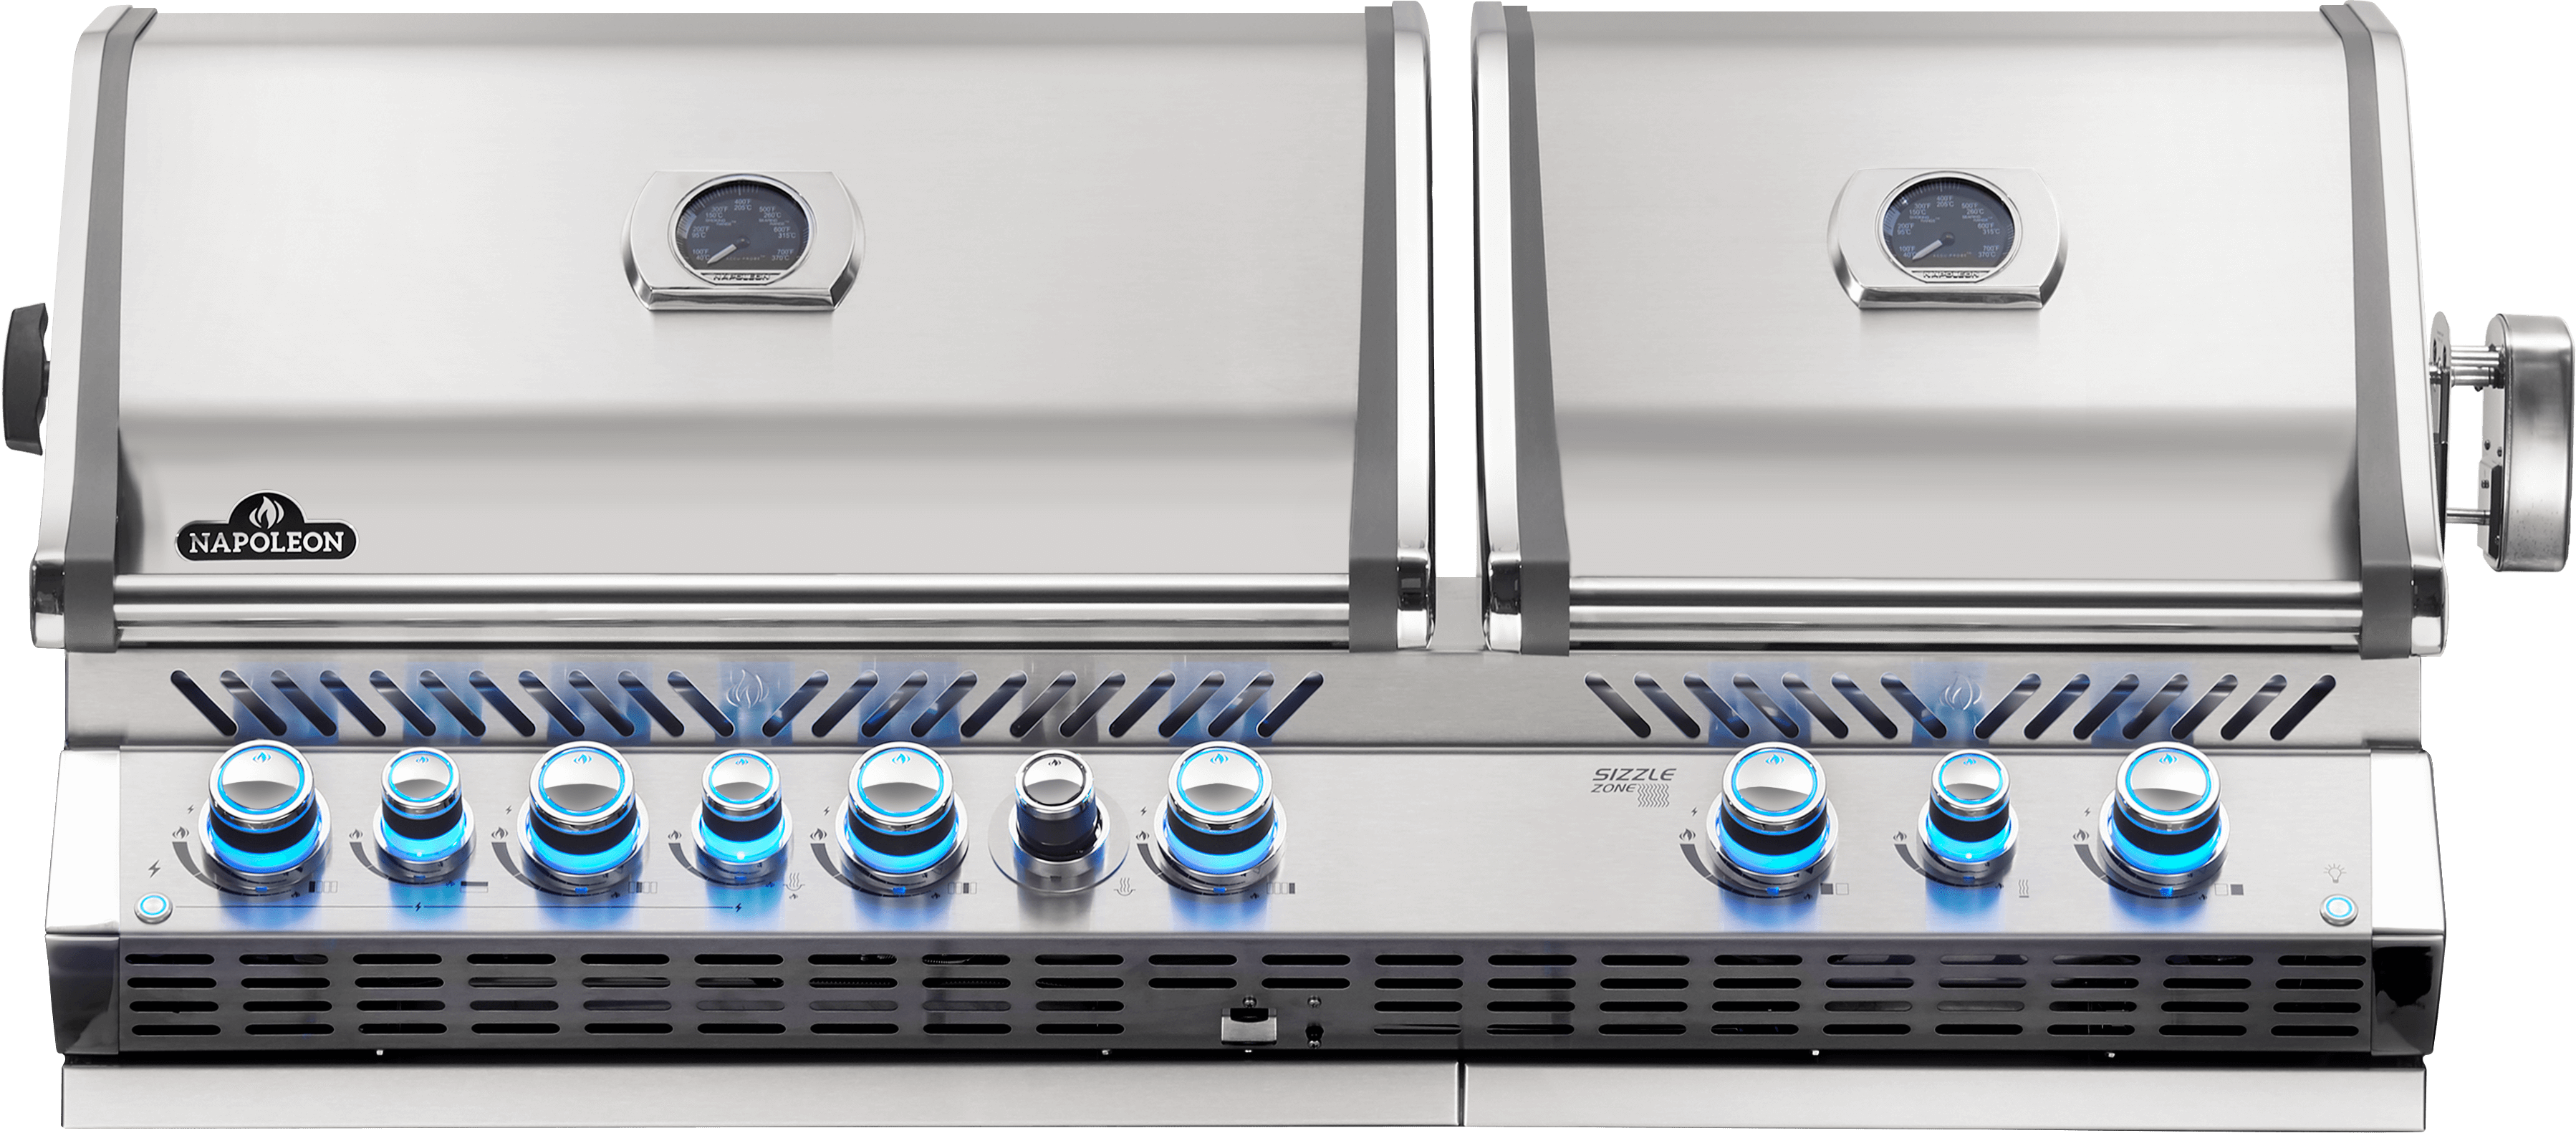 Napoleon Built-in Prestige PRO™ 825 Propane Gas Grill Head with Infrared Bottom and Rear Burner, Stainless Steel